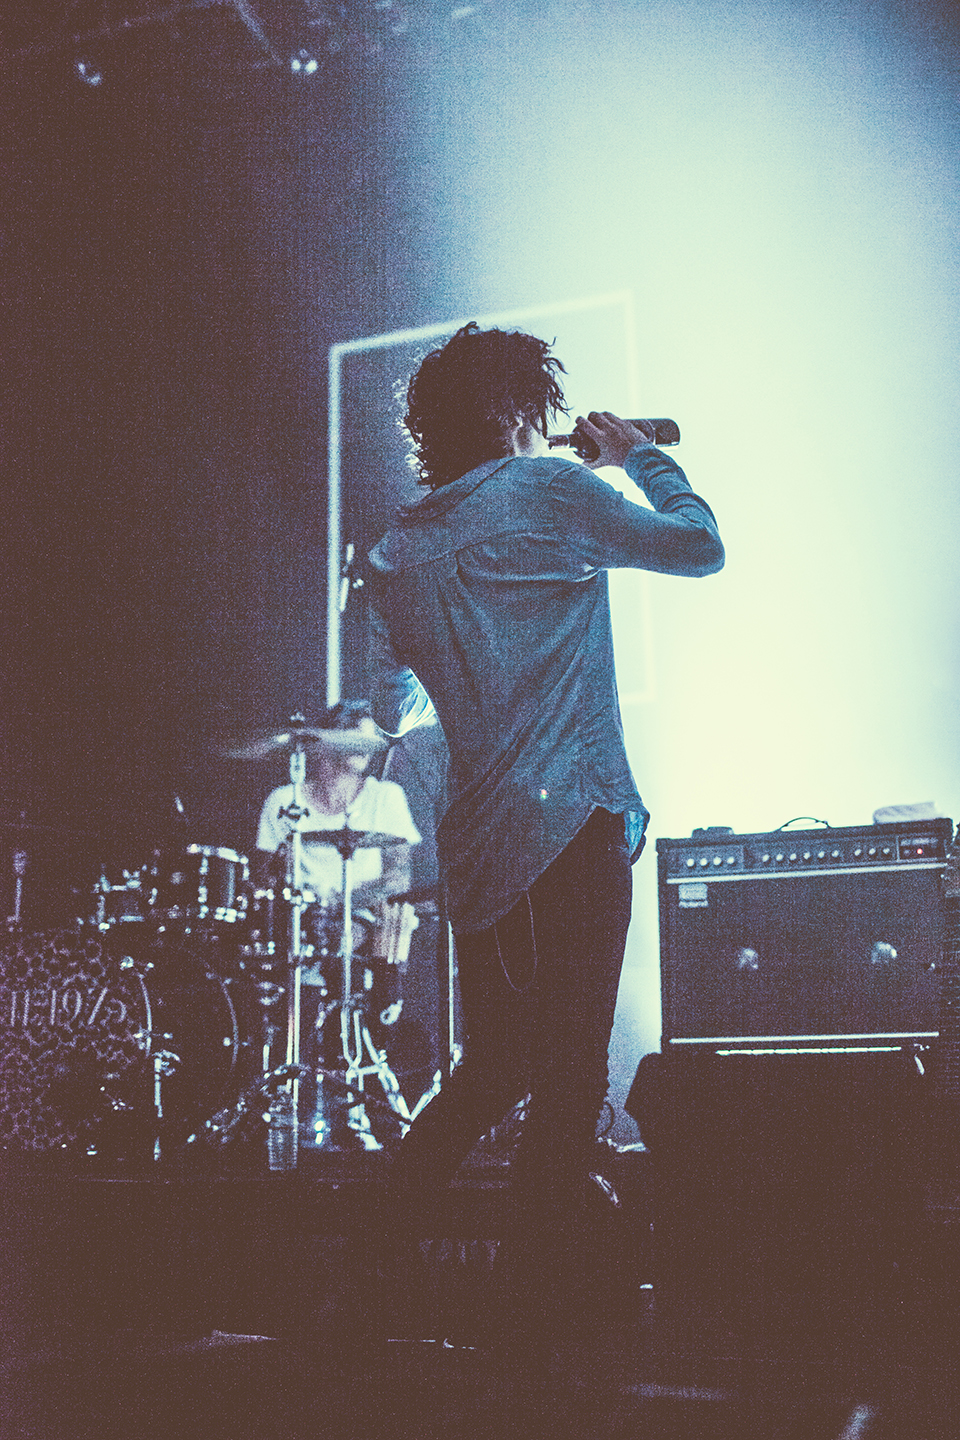 The 1975 - 2014 - Baltimore MD - by Matty Vogel - 19.jpg